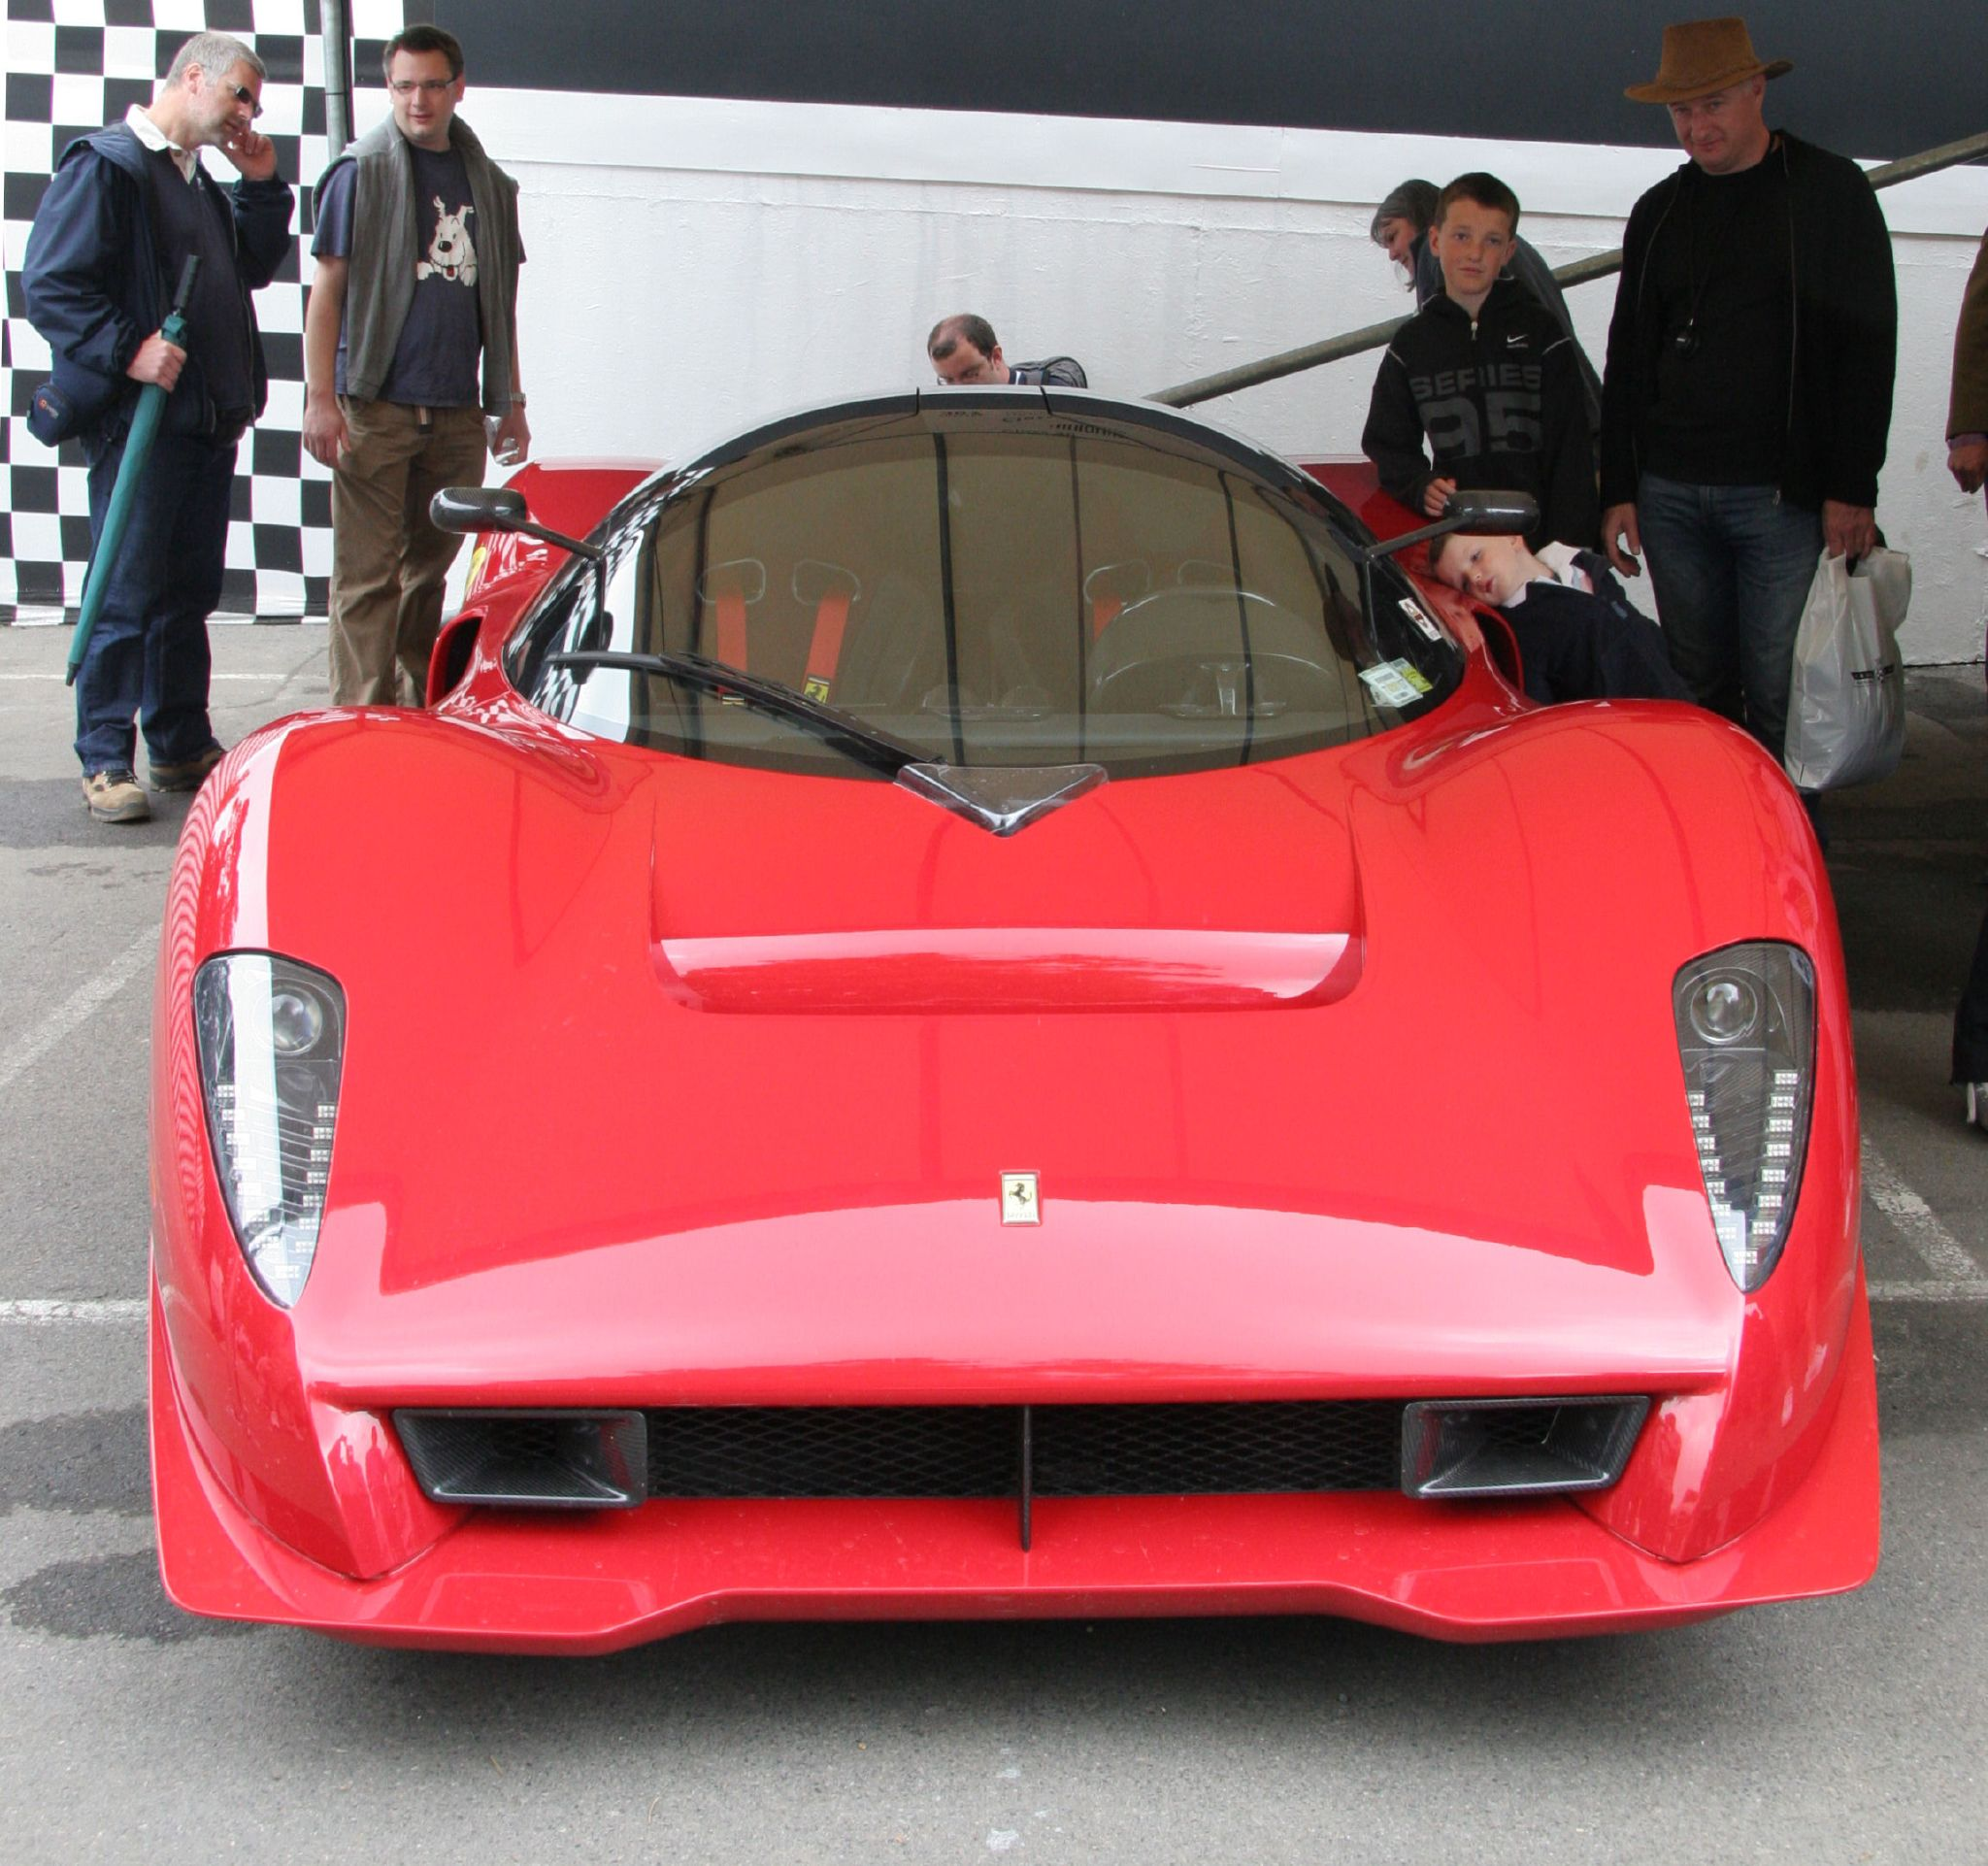 File:Ferrari P45 front on jpg - Wikimedia Commons